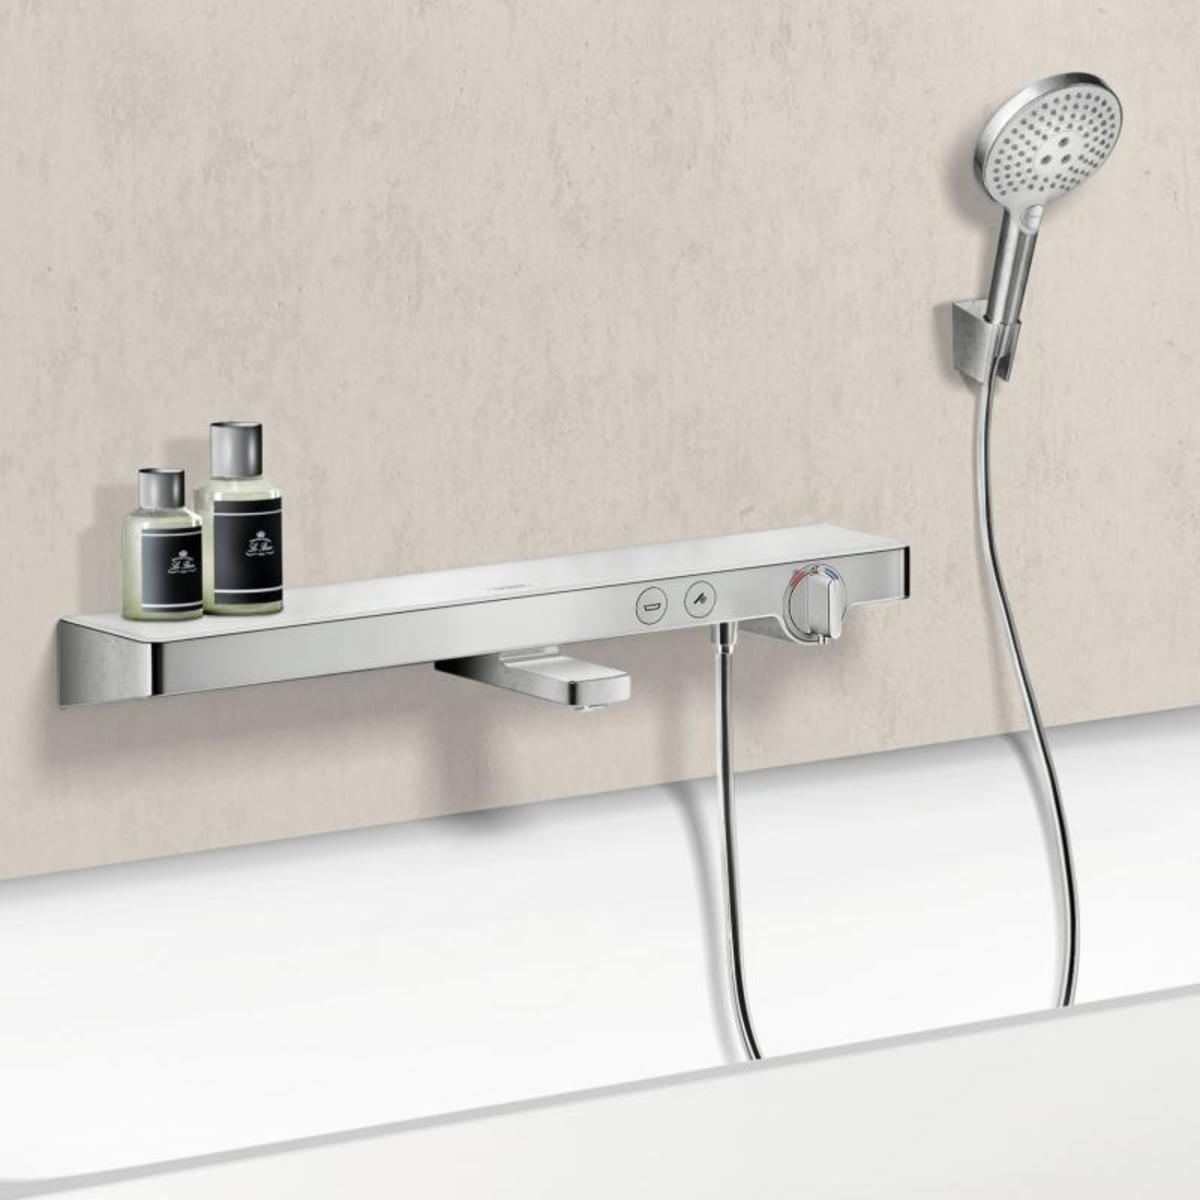 hansgrohe showertablet select opbouw badkraan. Black Bedroom Furniture Sets. Home Design Ideas